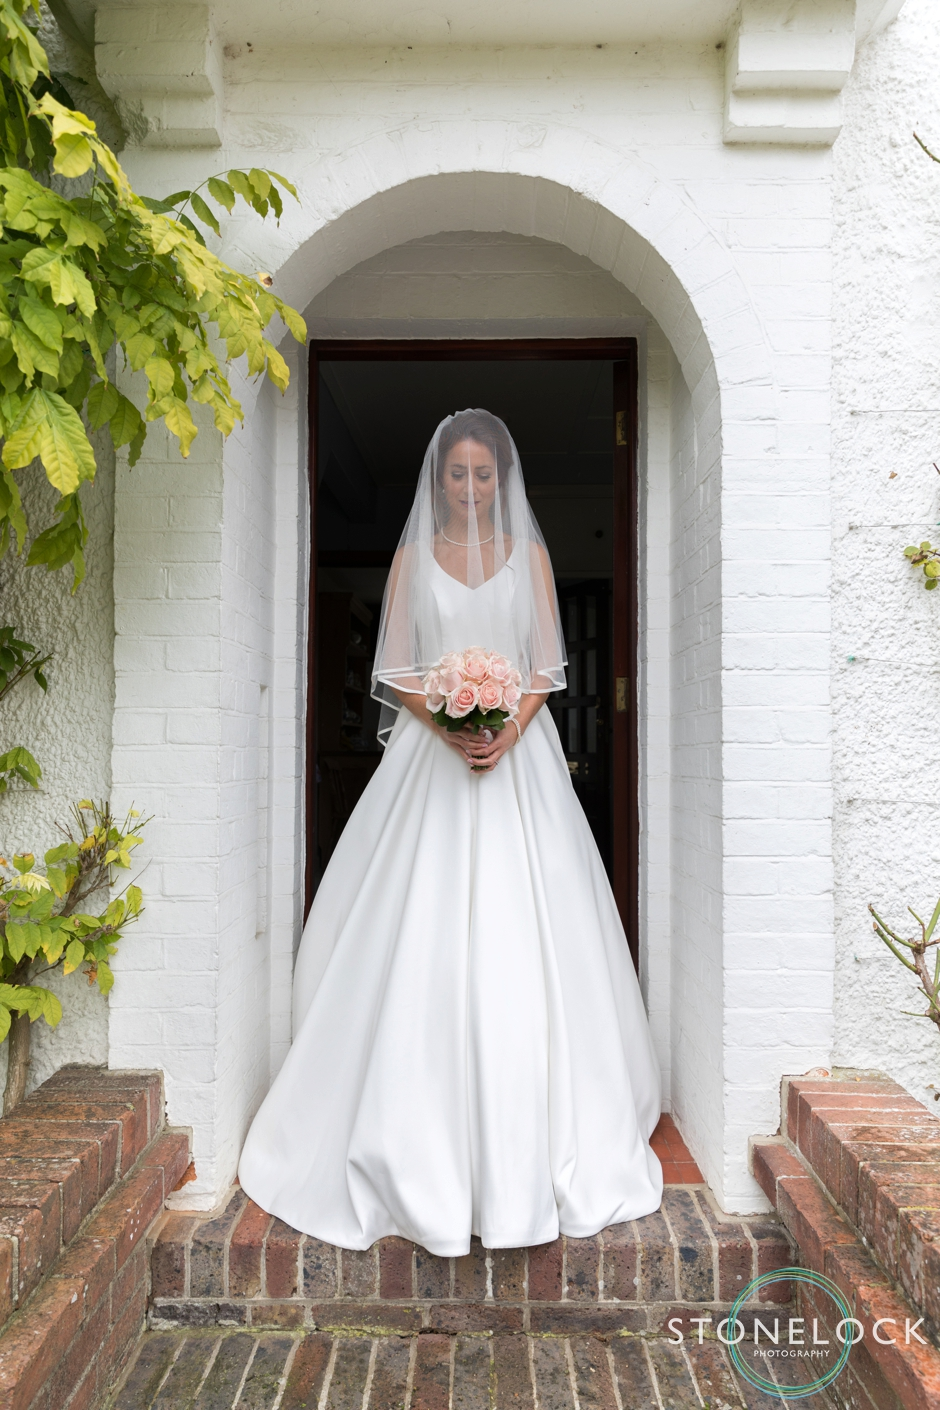 Portrait of a bride with pink roses standing outside her front door